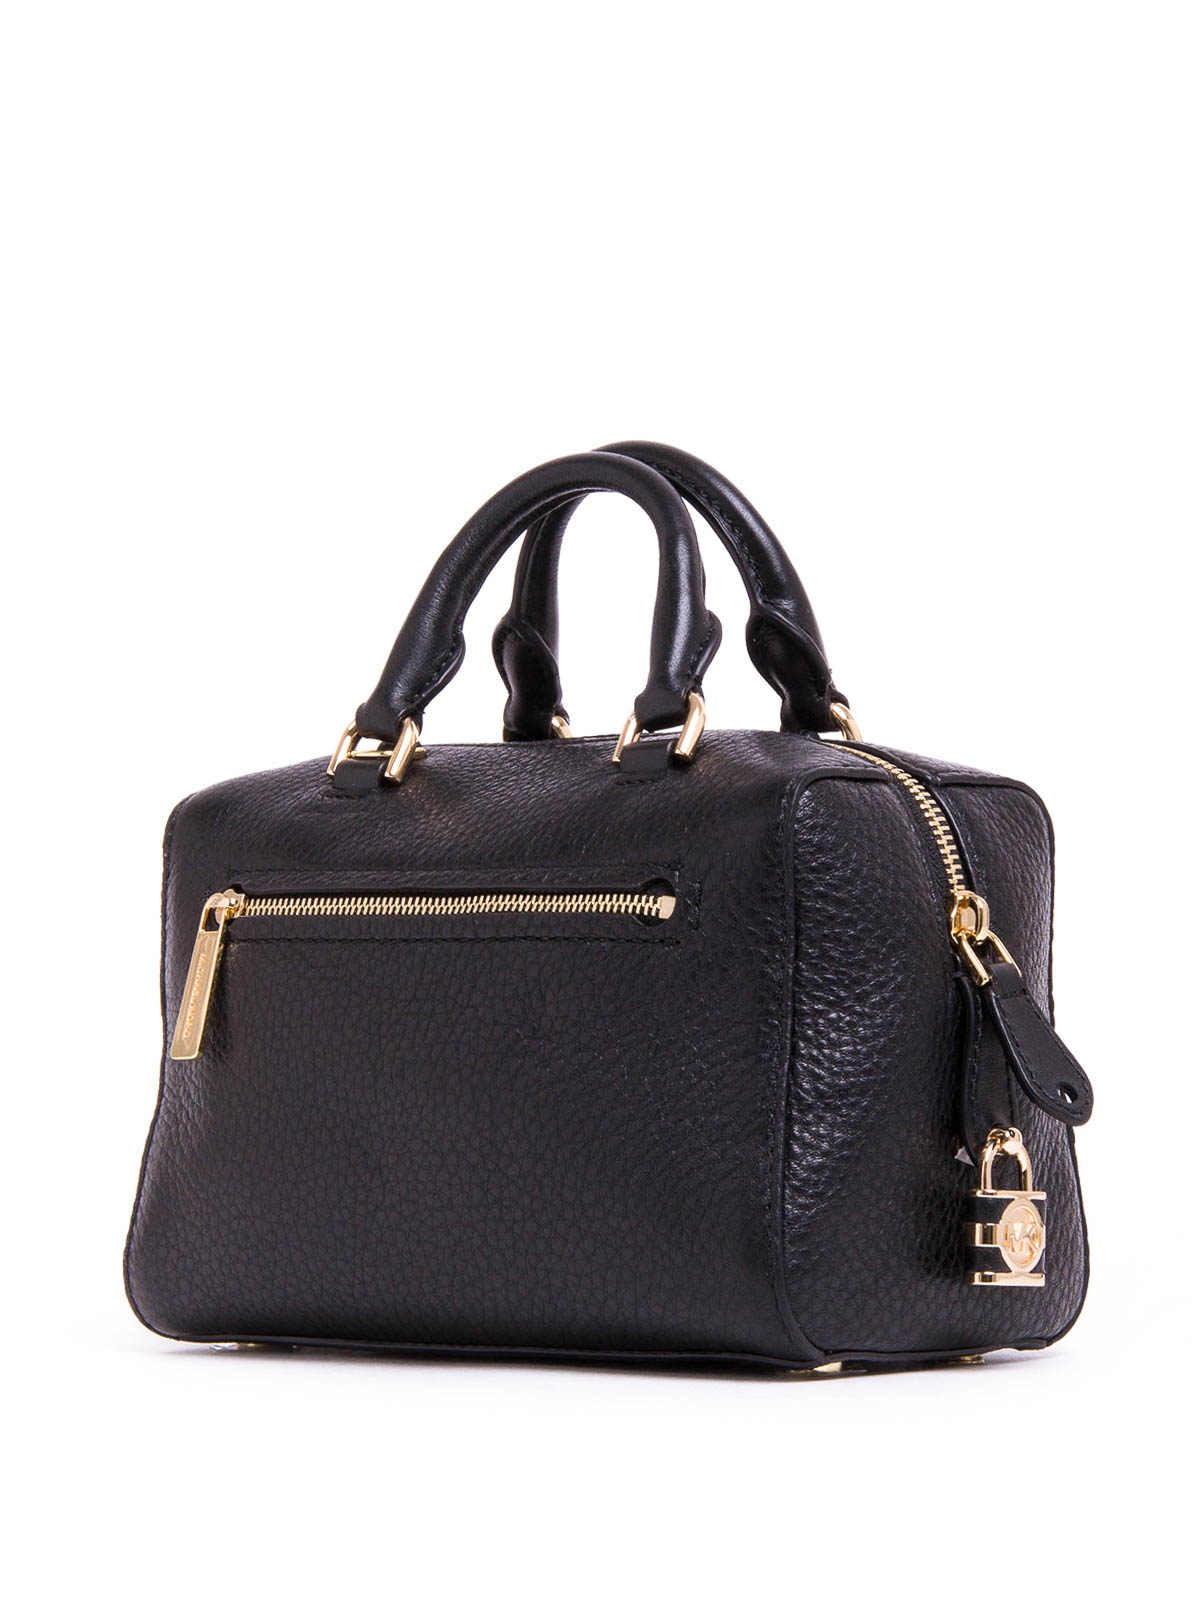 Ikrix Michael Kors Bowling Bags Grainy Leather Kirby Bag